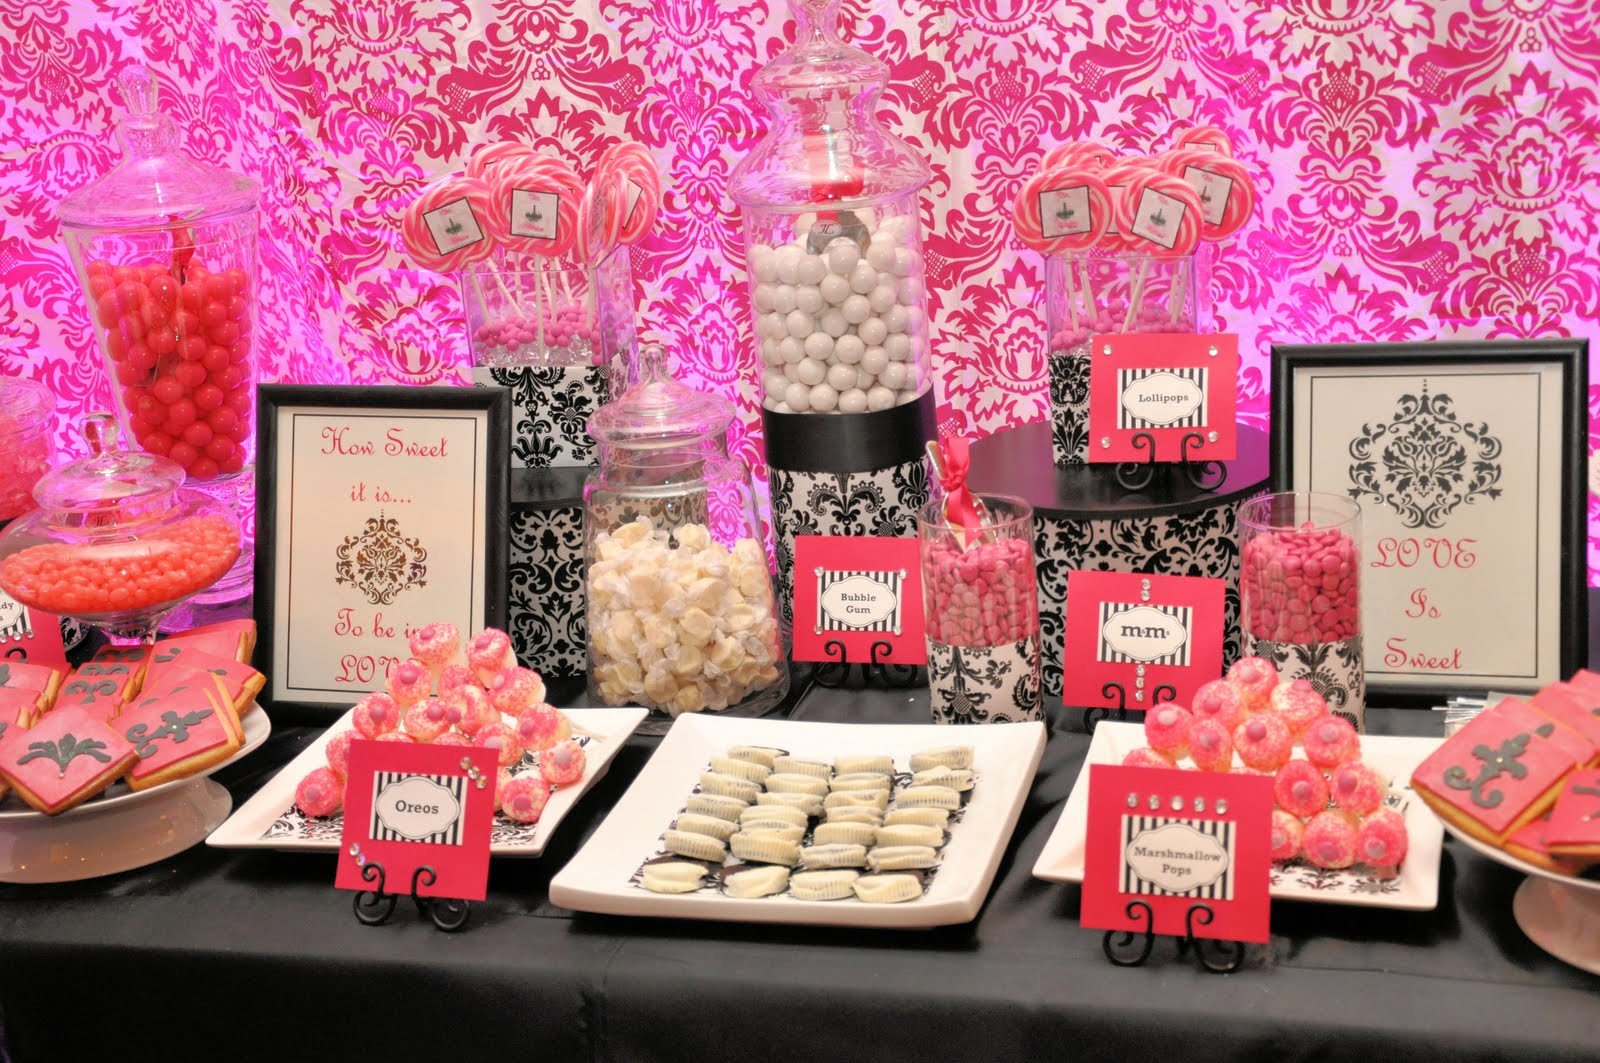 Chic Designs N Fabulous Events: November 2010